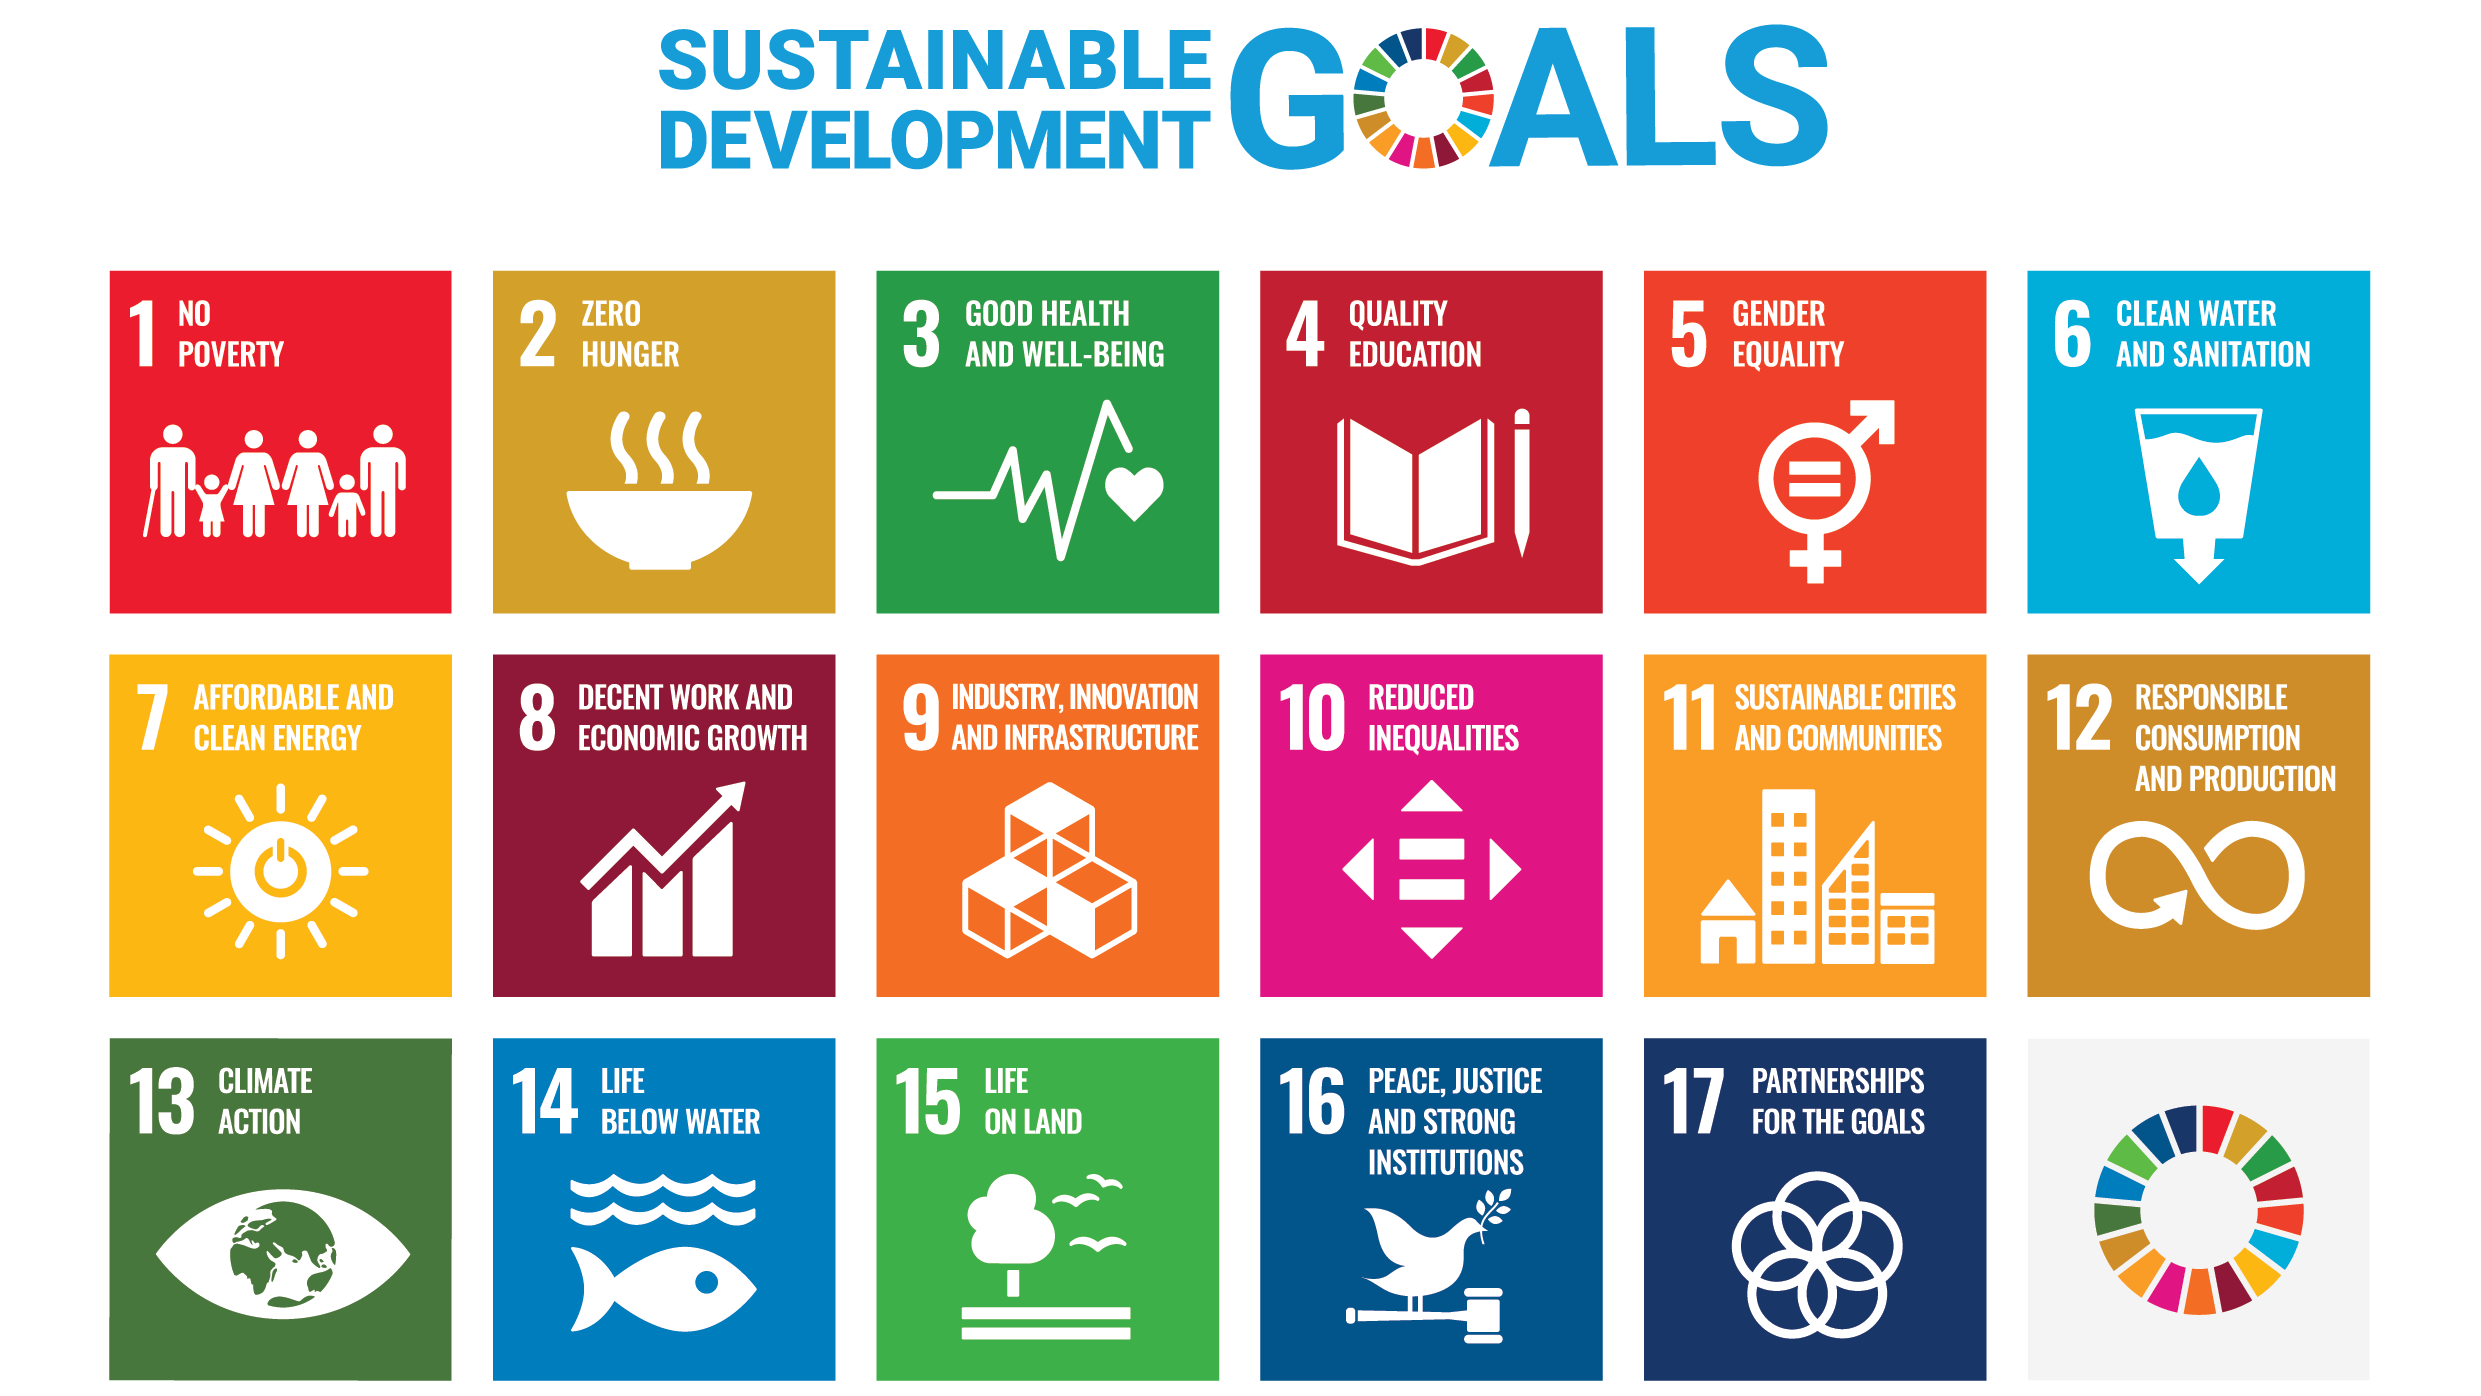 Keller supports the Sustainable Development Goals